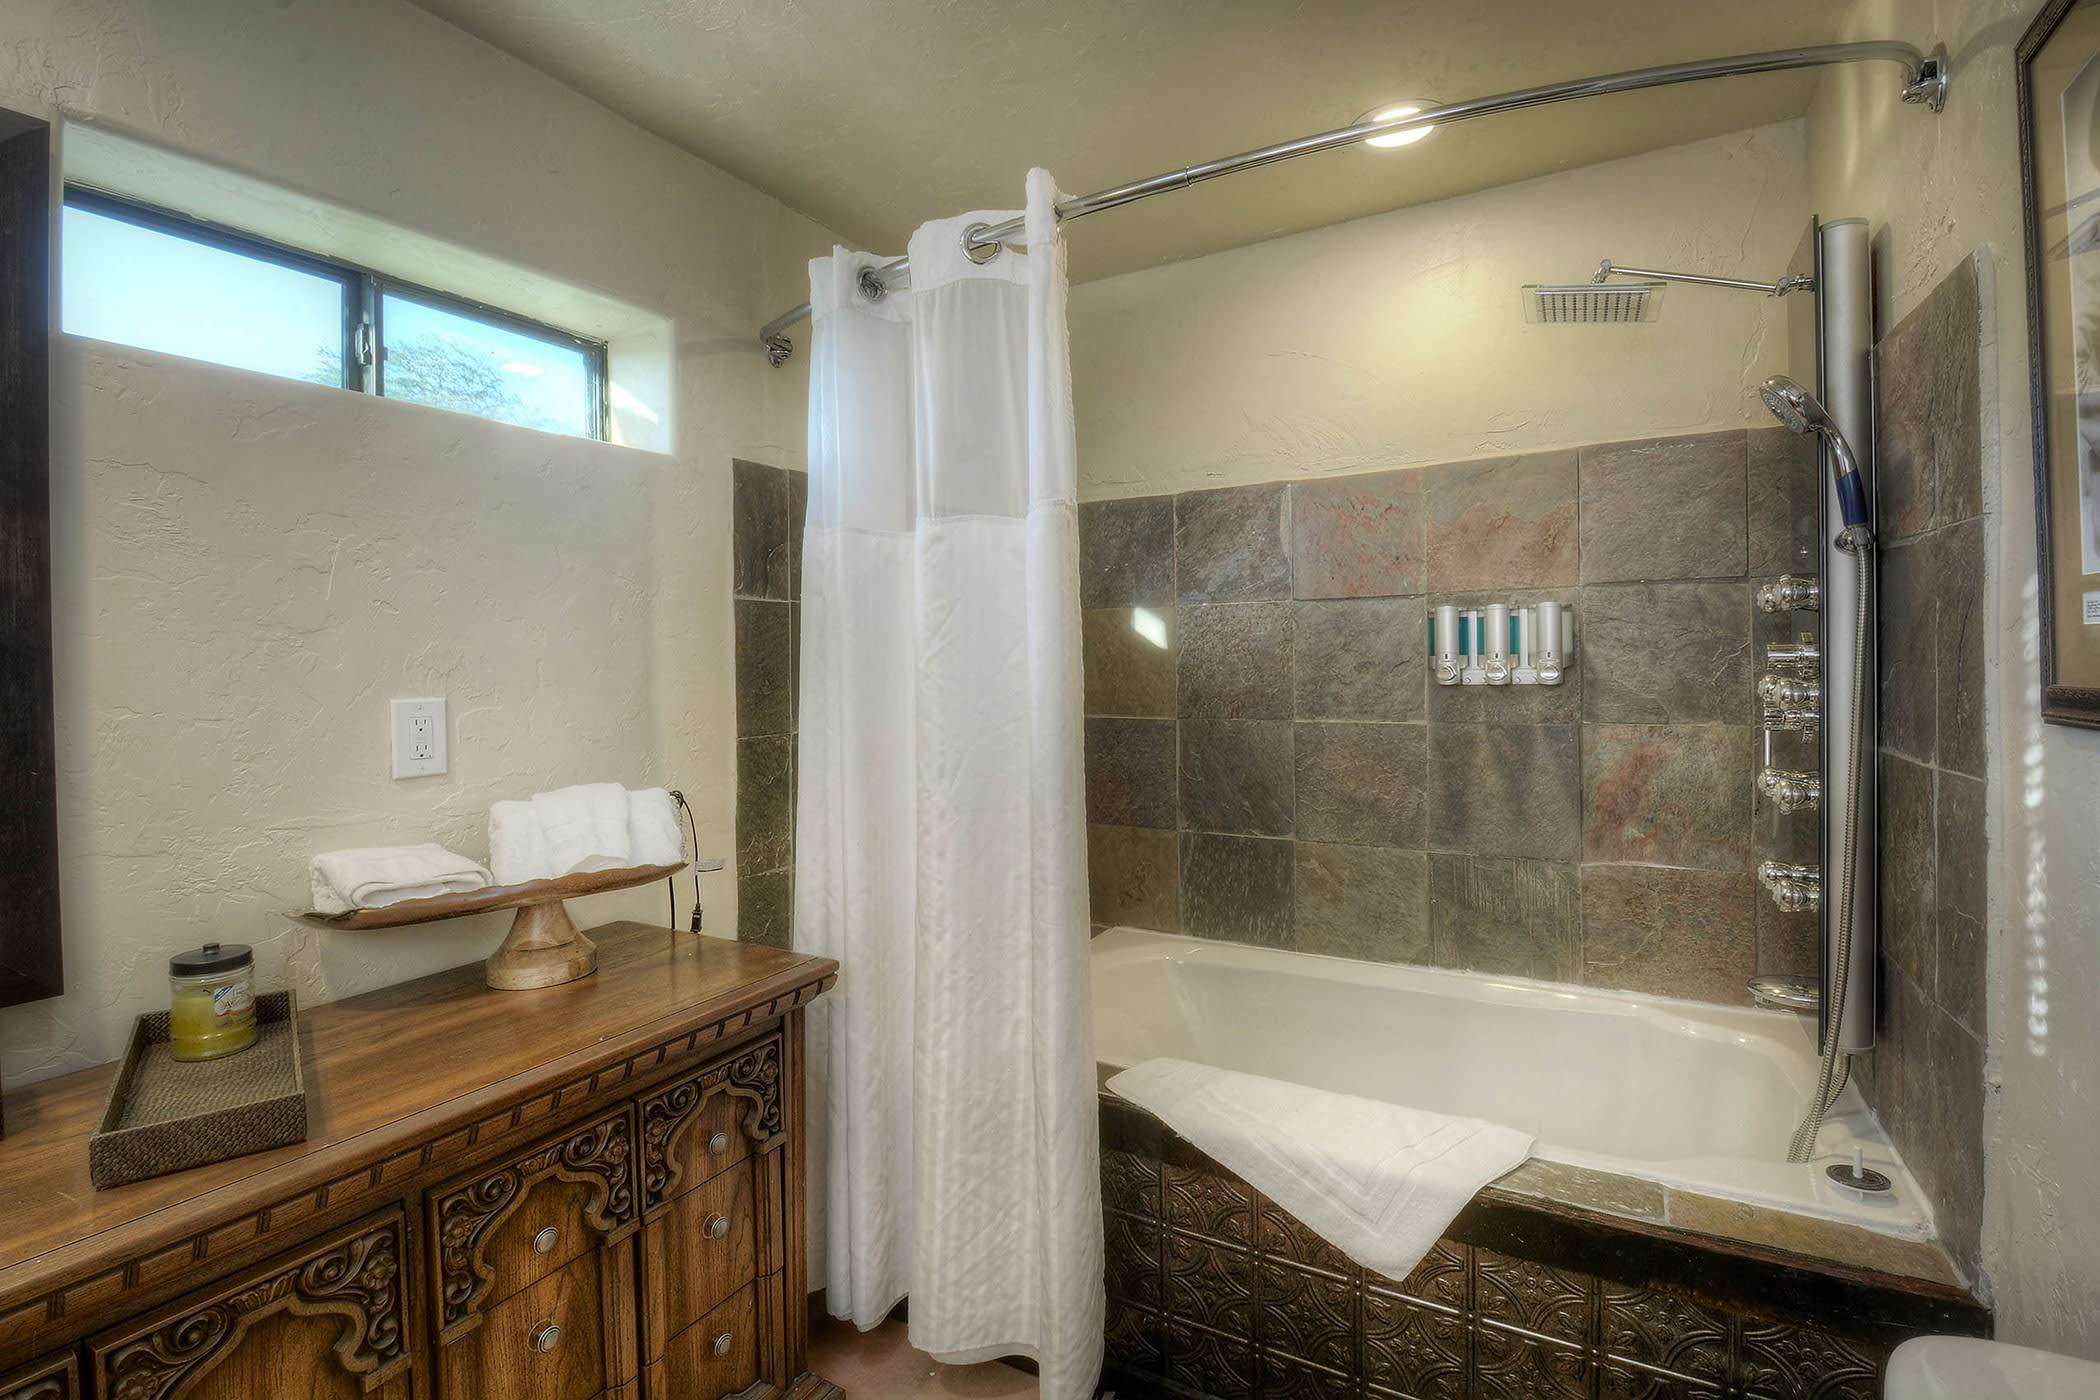 Make your way to the en-suite bathroom to rinse off in the Jacuzzi bathtub.